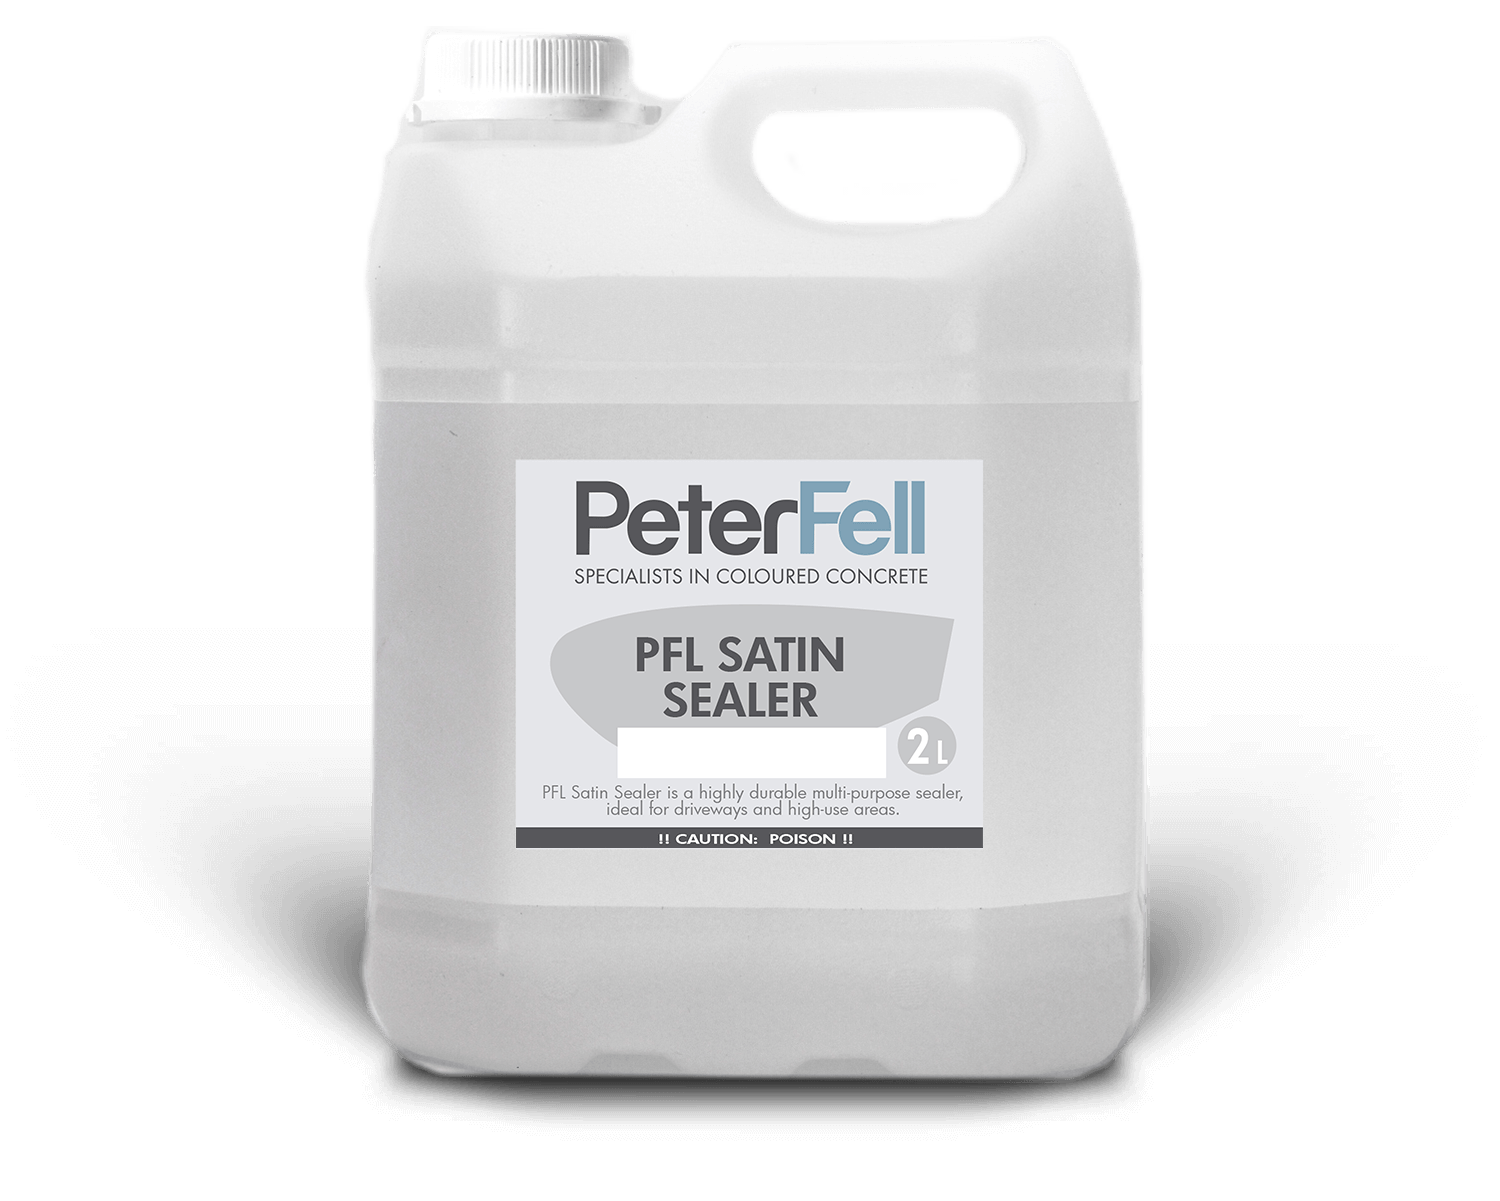 PeterFell Satin Concrete Sealer